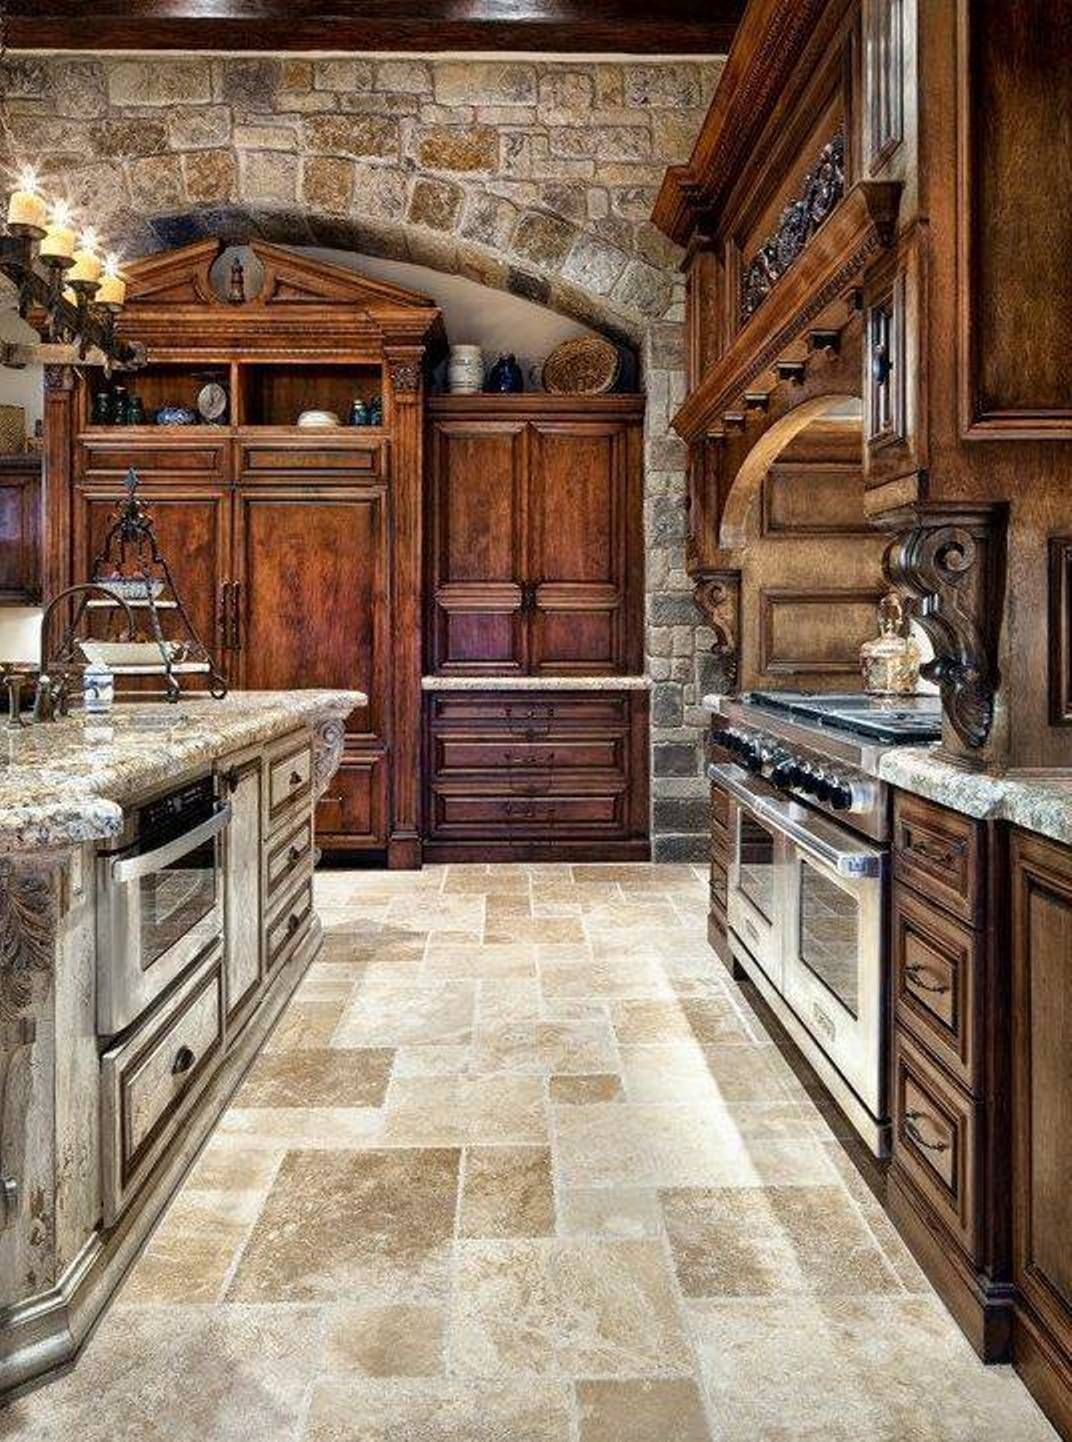 Old World Looking Kitchens Old World Tuscan Themed Kitchen Style With Arched Brick Wall